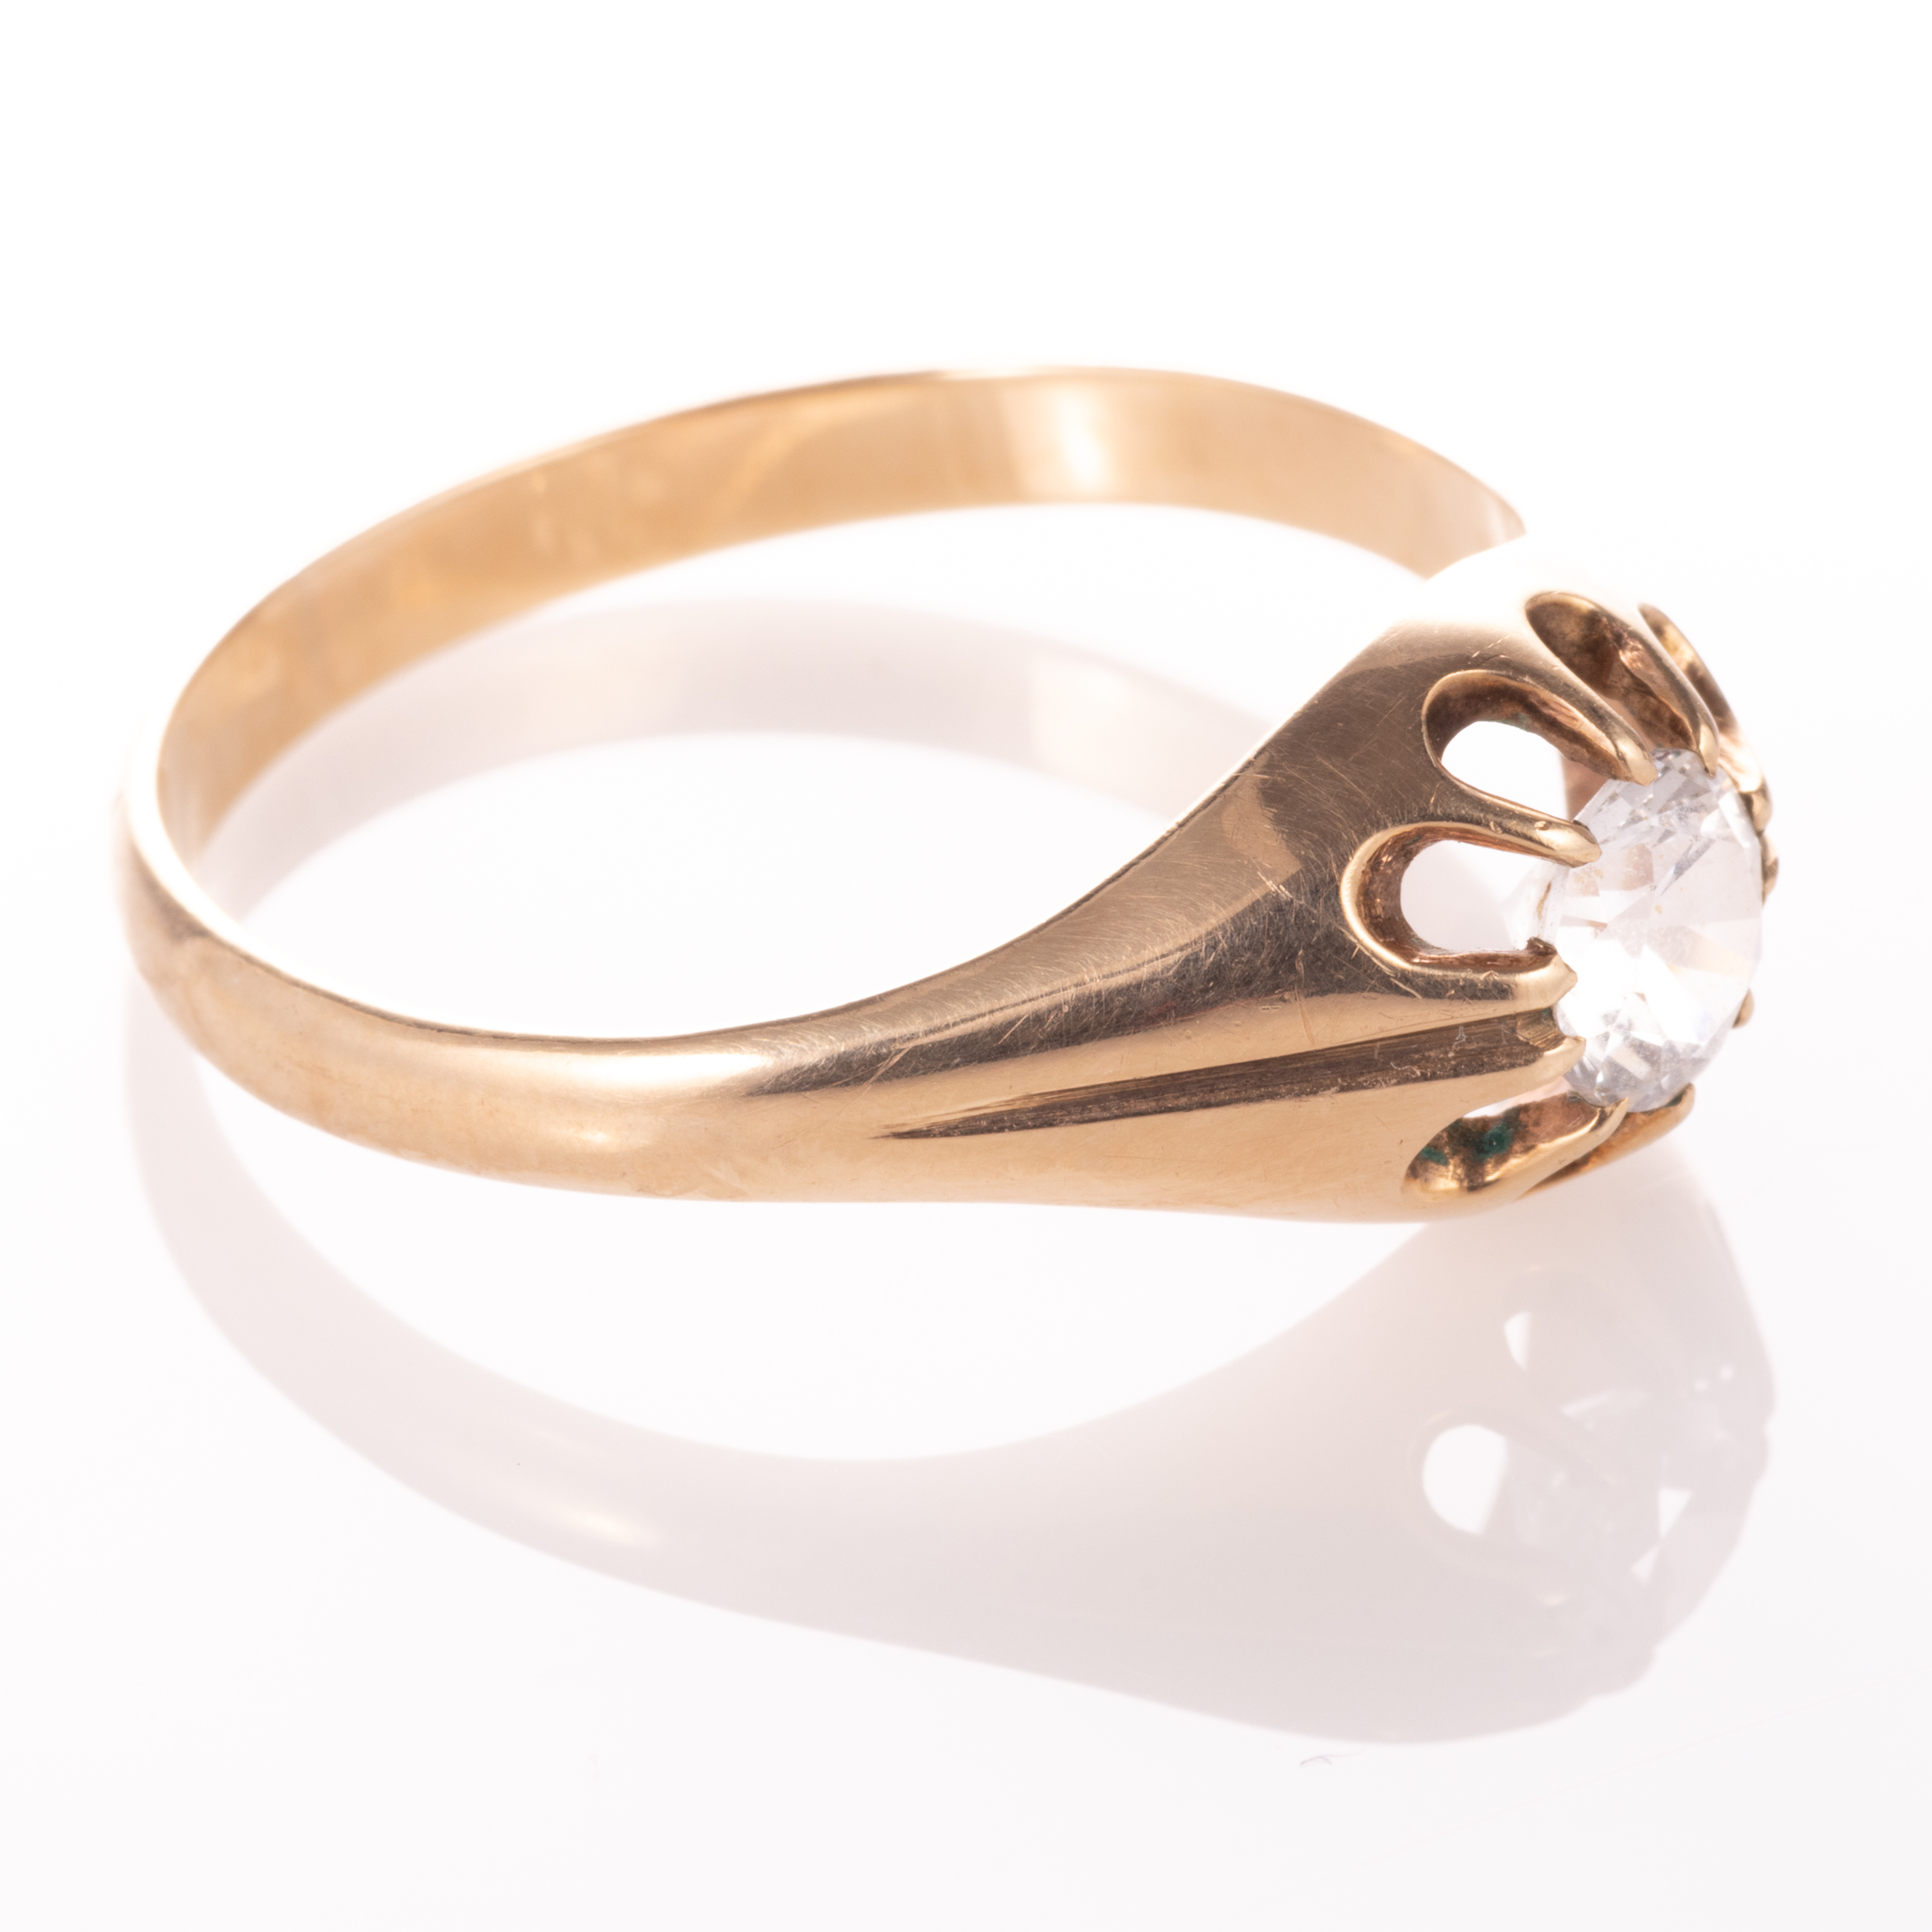 9ct Gold Gypsy Paste Solitaire Ring - Image 7 of 7